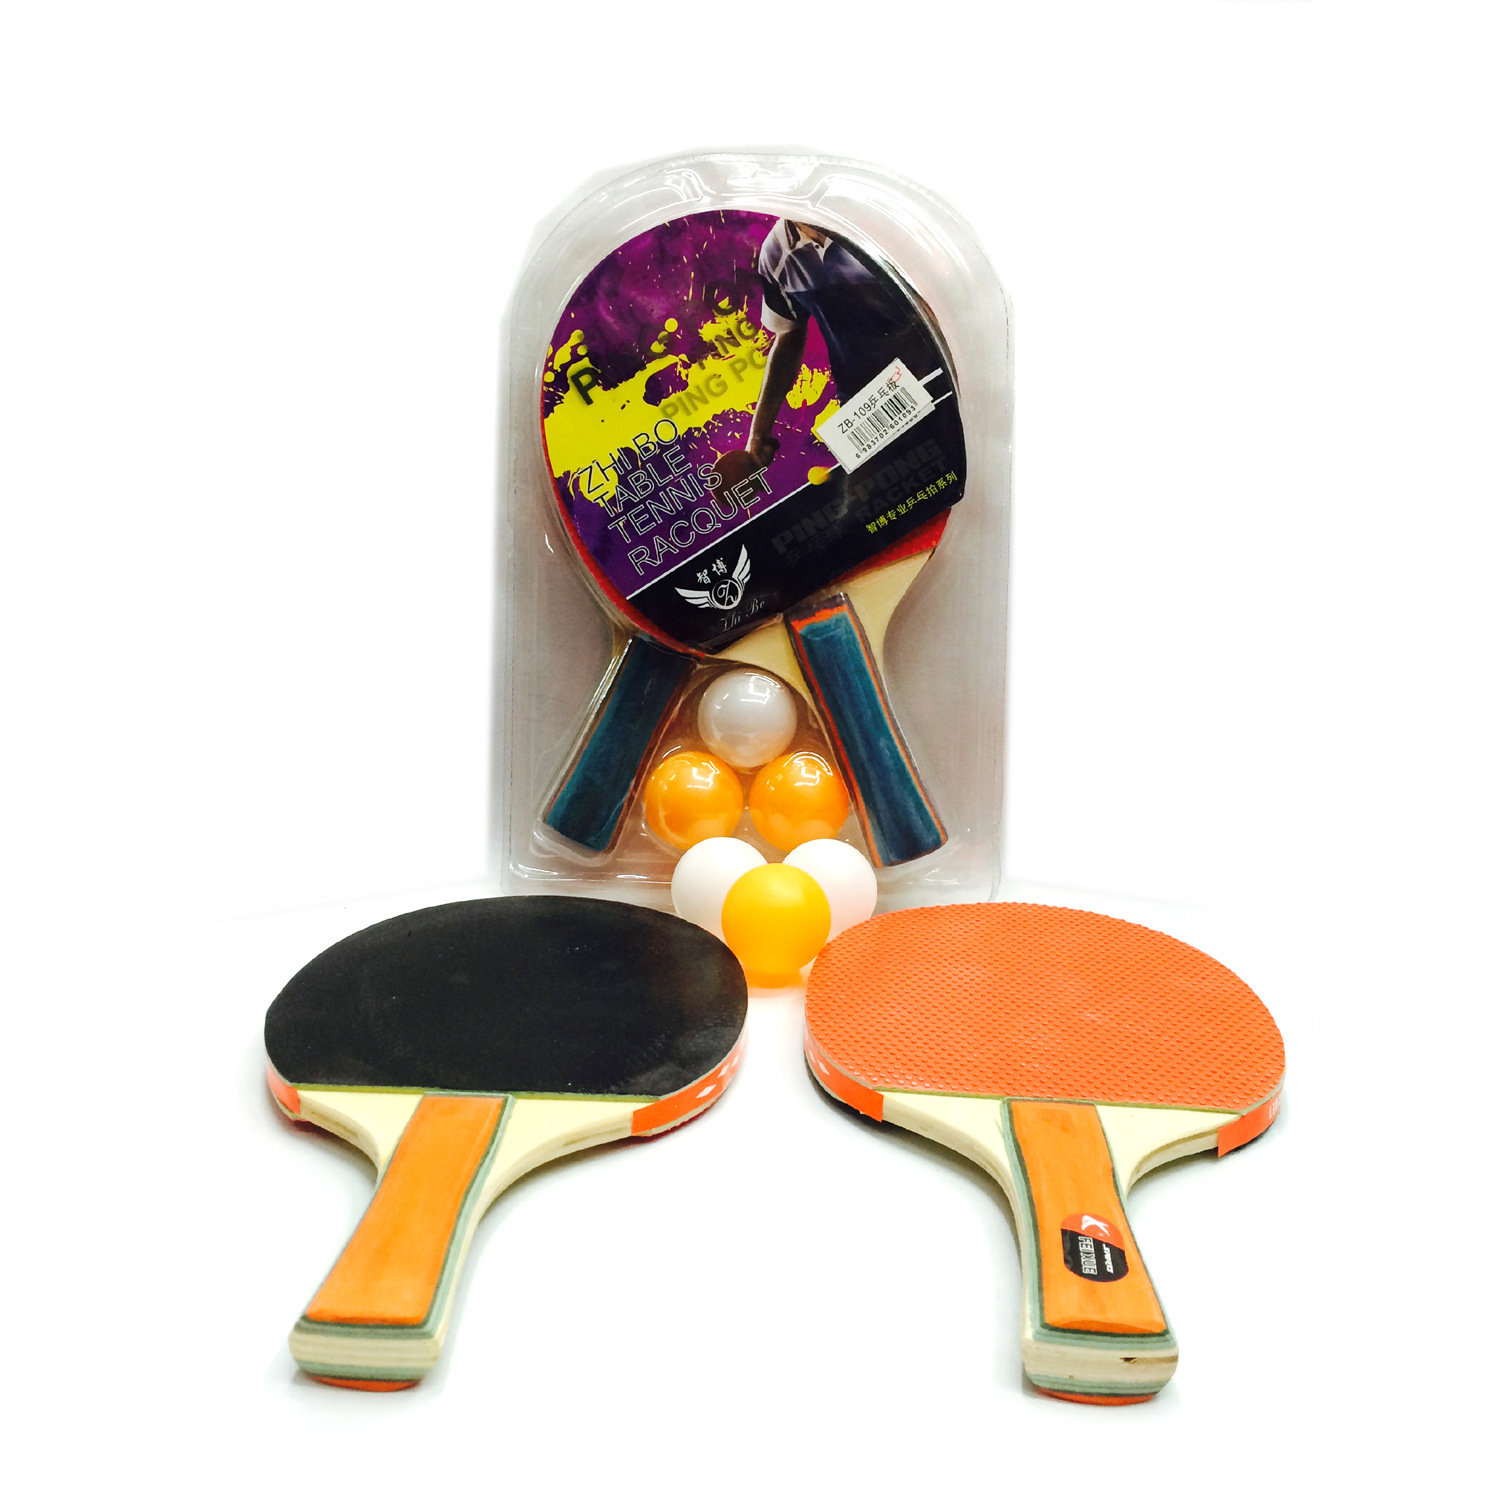 Tomohiro 8 Thick Table Tennis Racket Pimples Out/in Table Tennis Racket Of Beat 2 Send 3 Ball Table Tennis Suit Wholesale